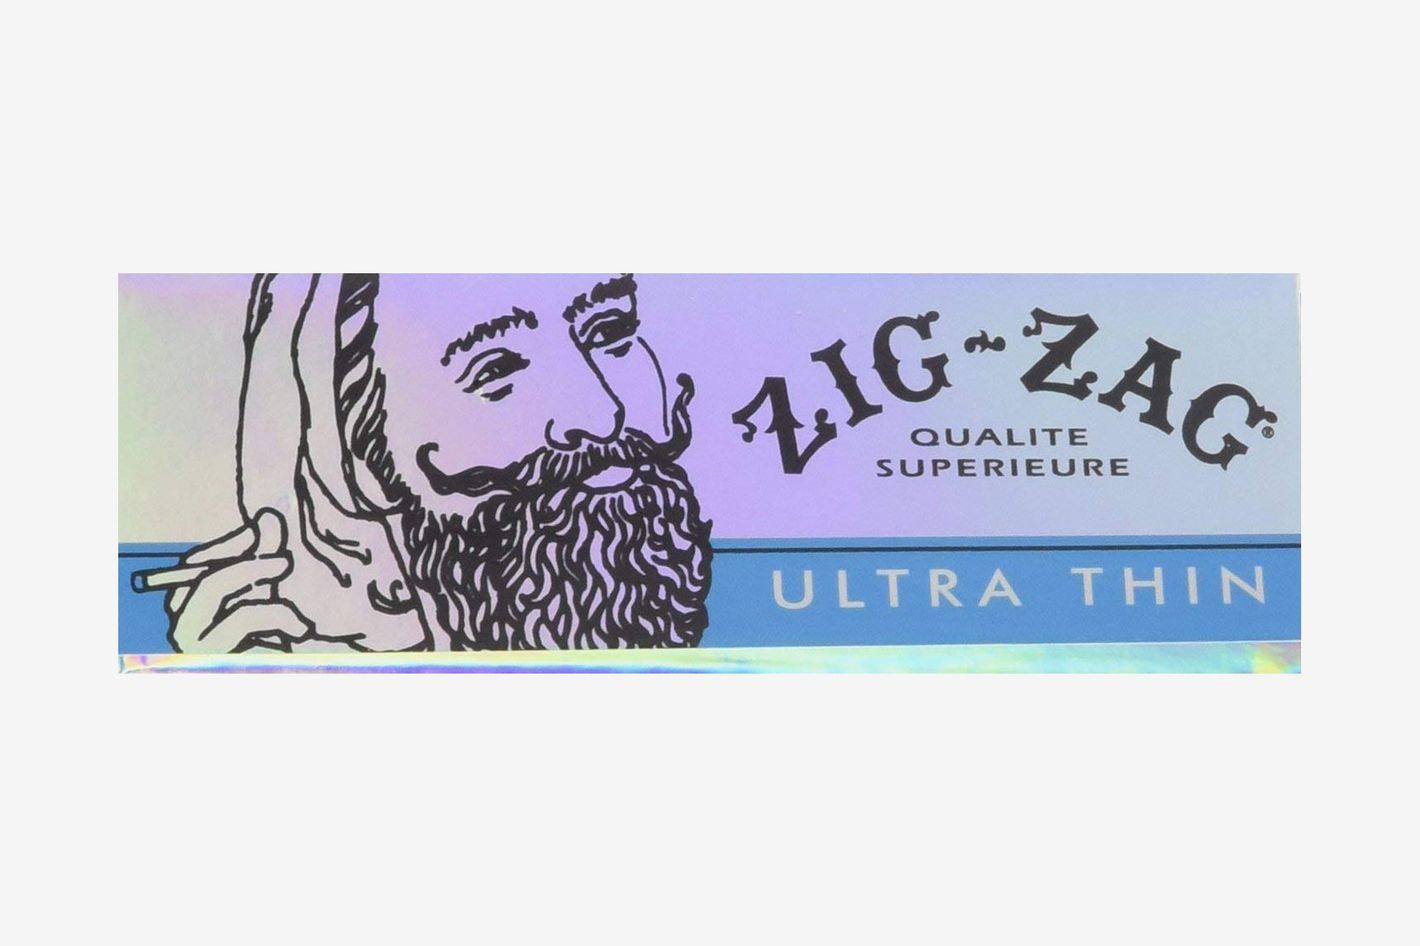 Zig Zag Ultra Thin Cigarette Rolling Papers